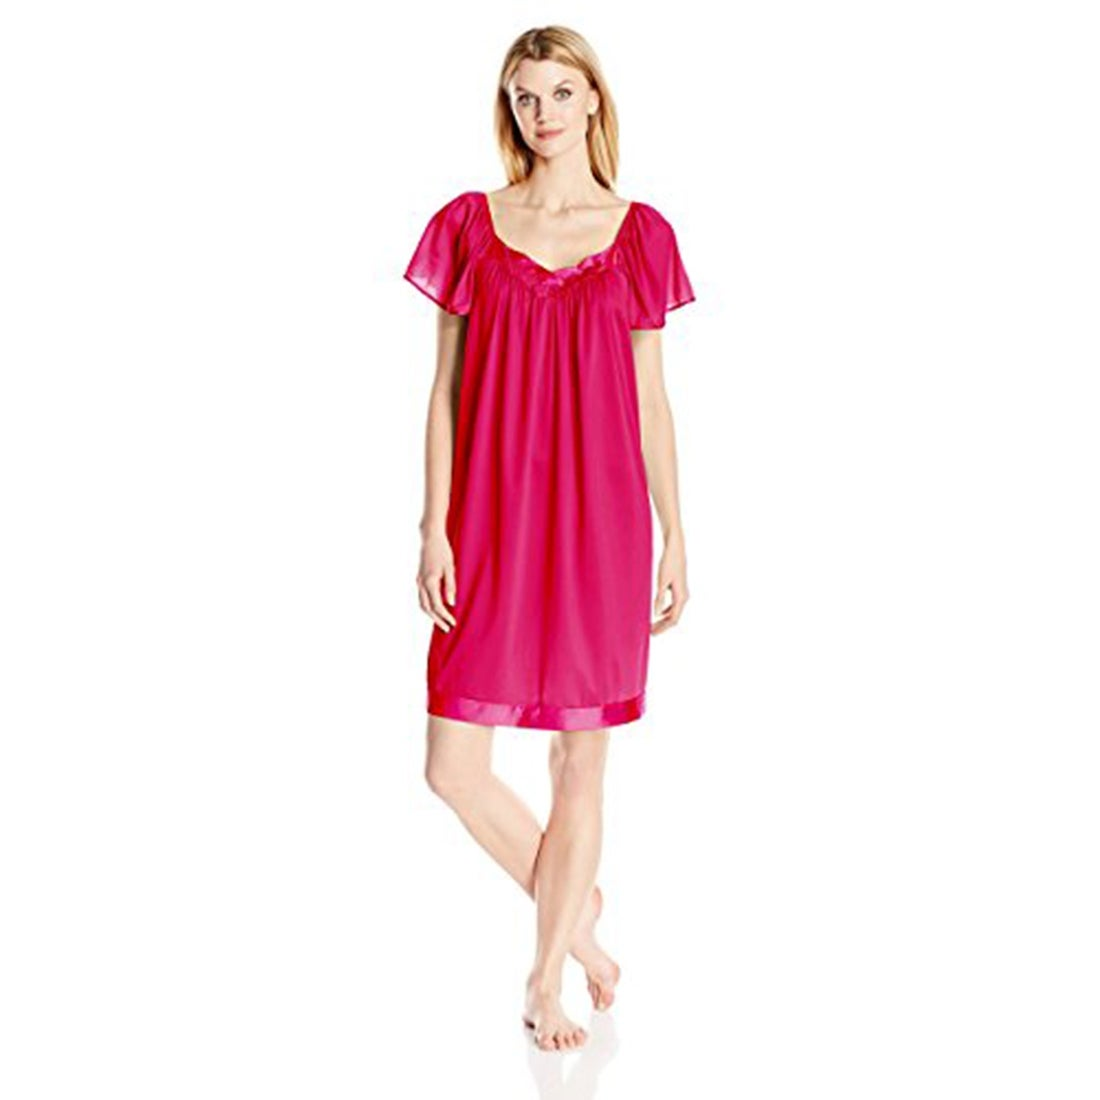 Shop Vanity Fair Women s Coloratura Sleepwear Short Flutter Sleeve Gown  30109 - Free Shipping On Orders Over  45 - Overstock.com - 19813217 e6a2d0219